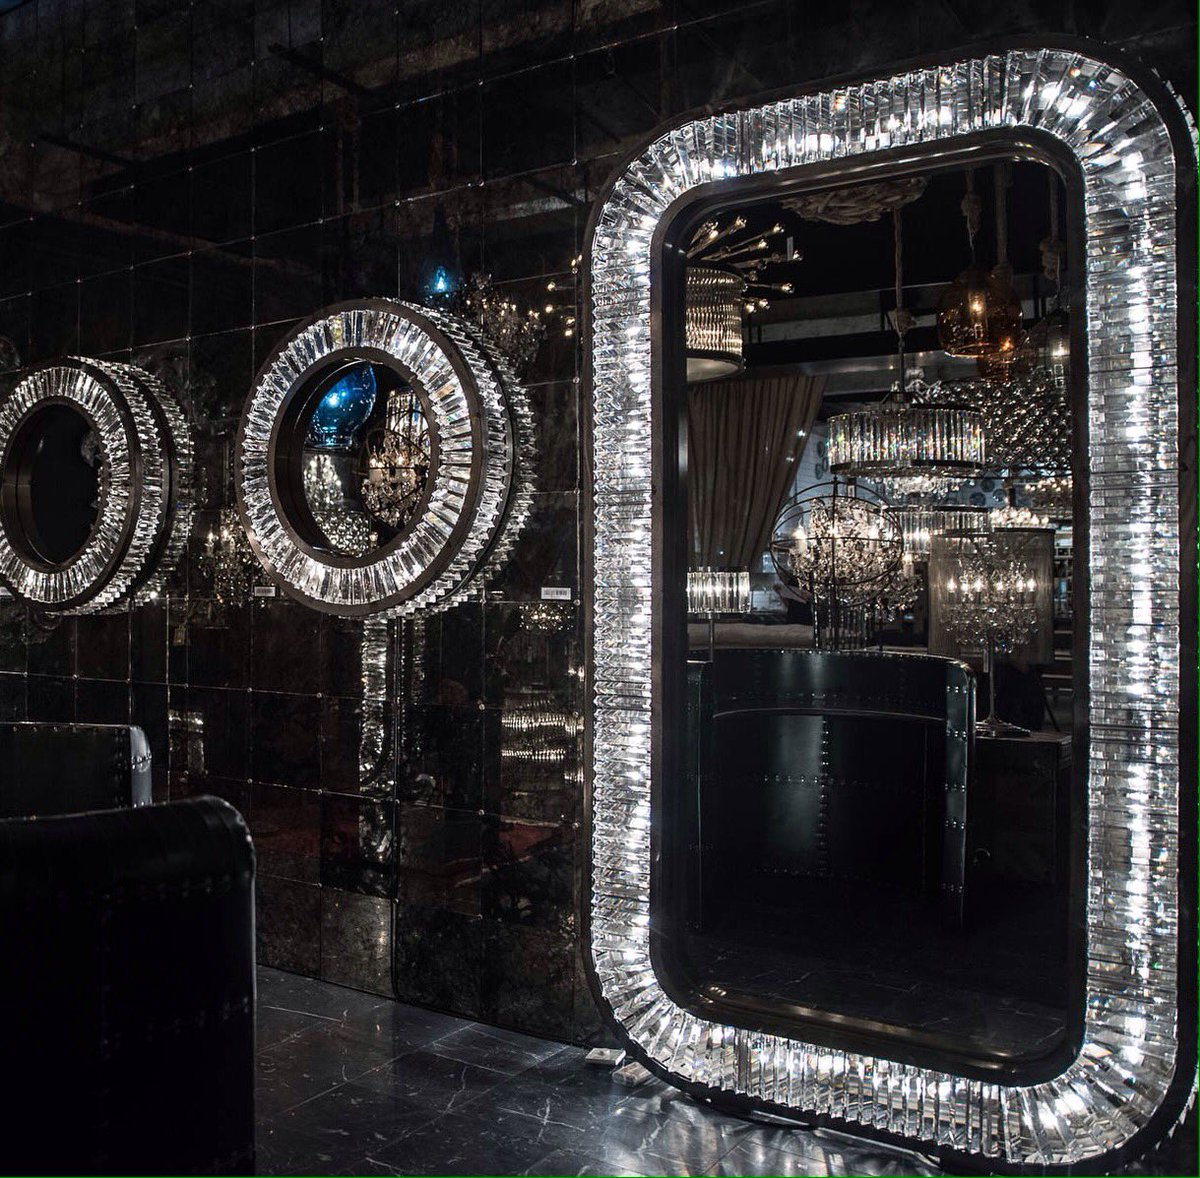 Timothy oulton on twitter give your home a more dramatic timothy oulton on twitter give your home a more dramatic perspective with the rex tall floor mirror and rex round wall mirror kyliejenner amipublicfo Gallery